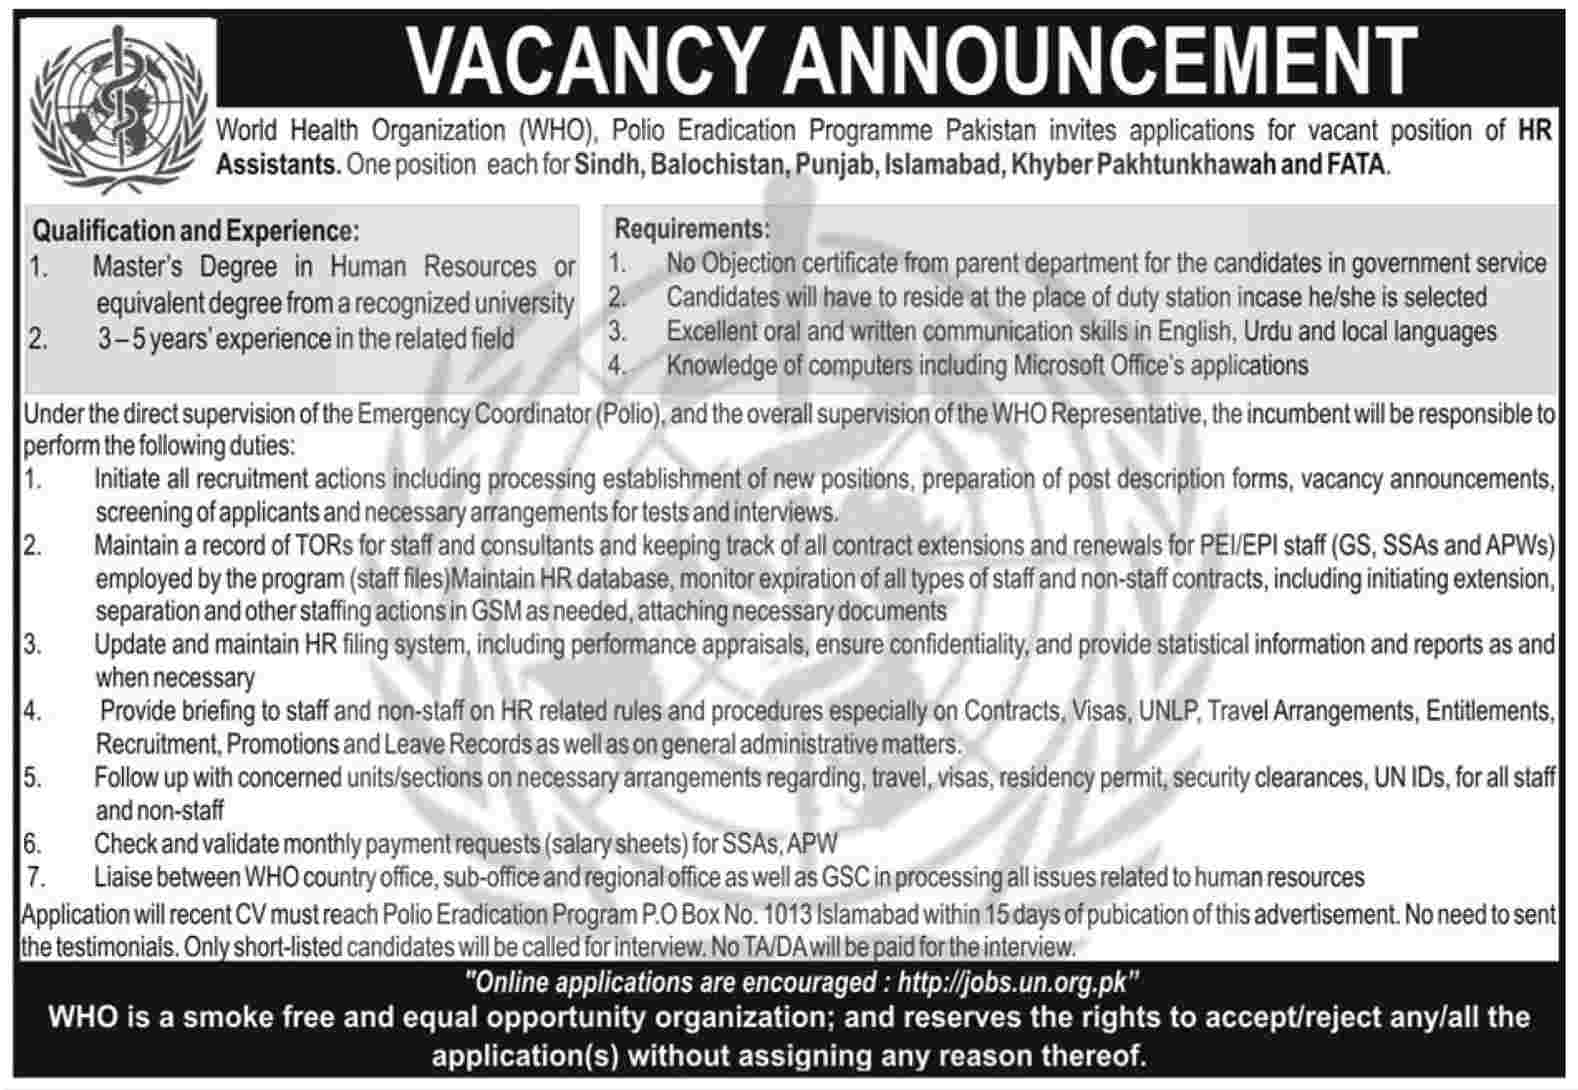 HR Jobs at W.H.O, Polio Eradication Programme